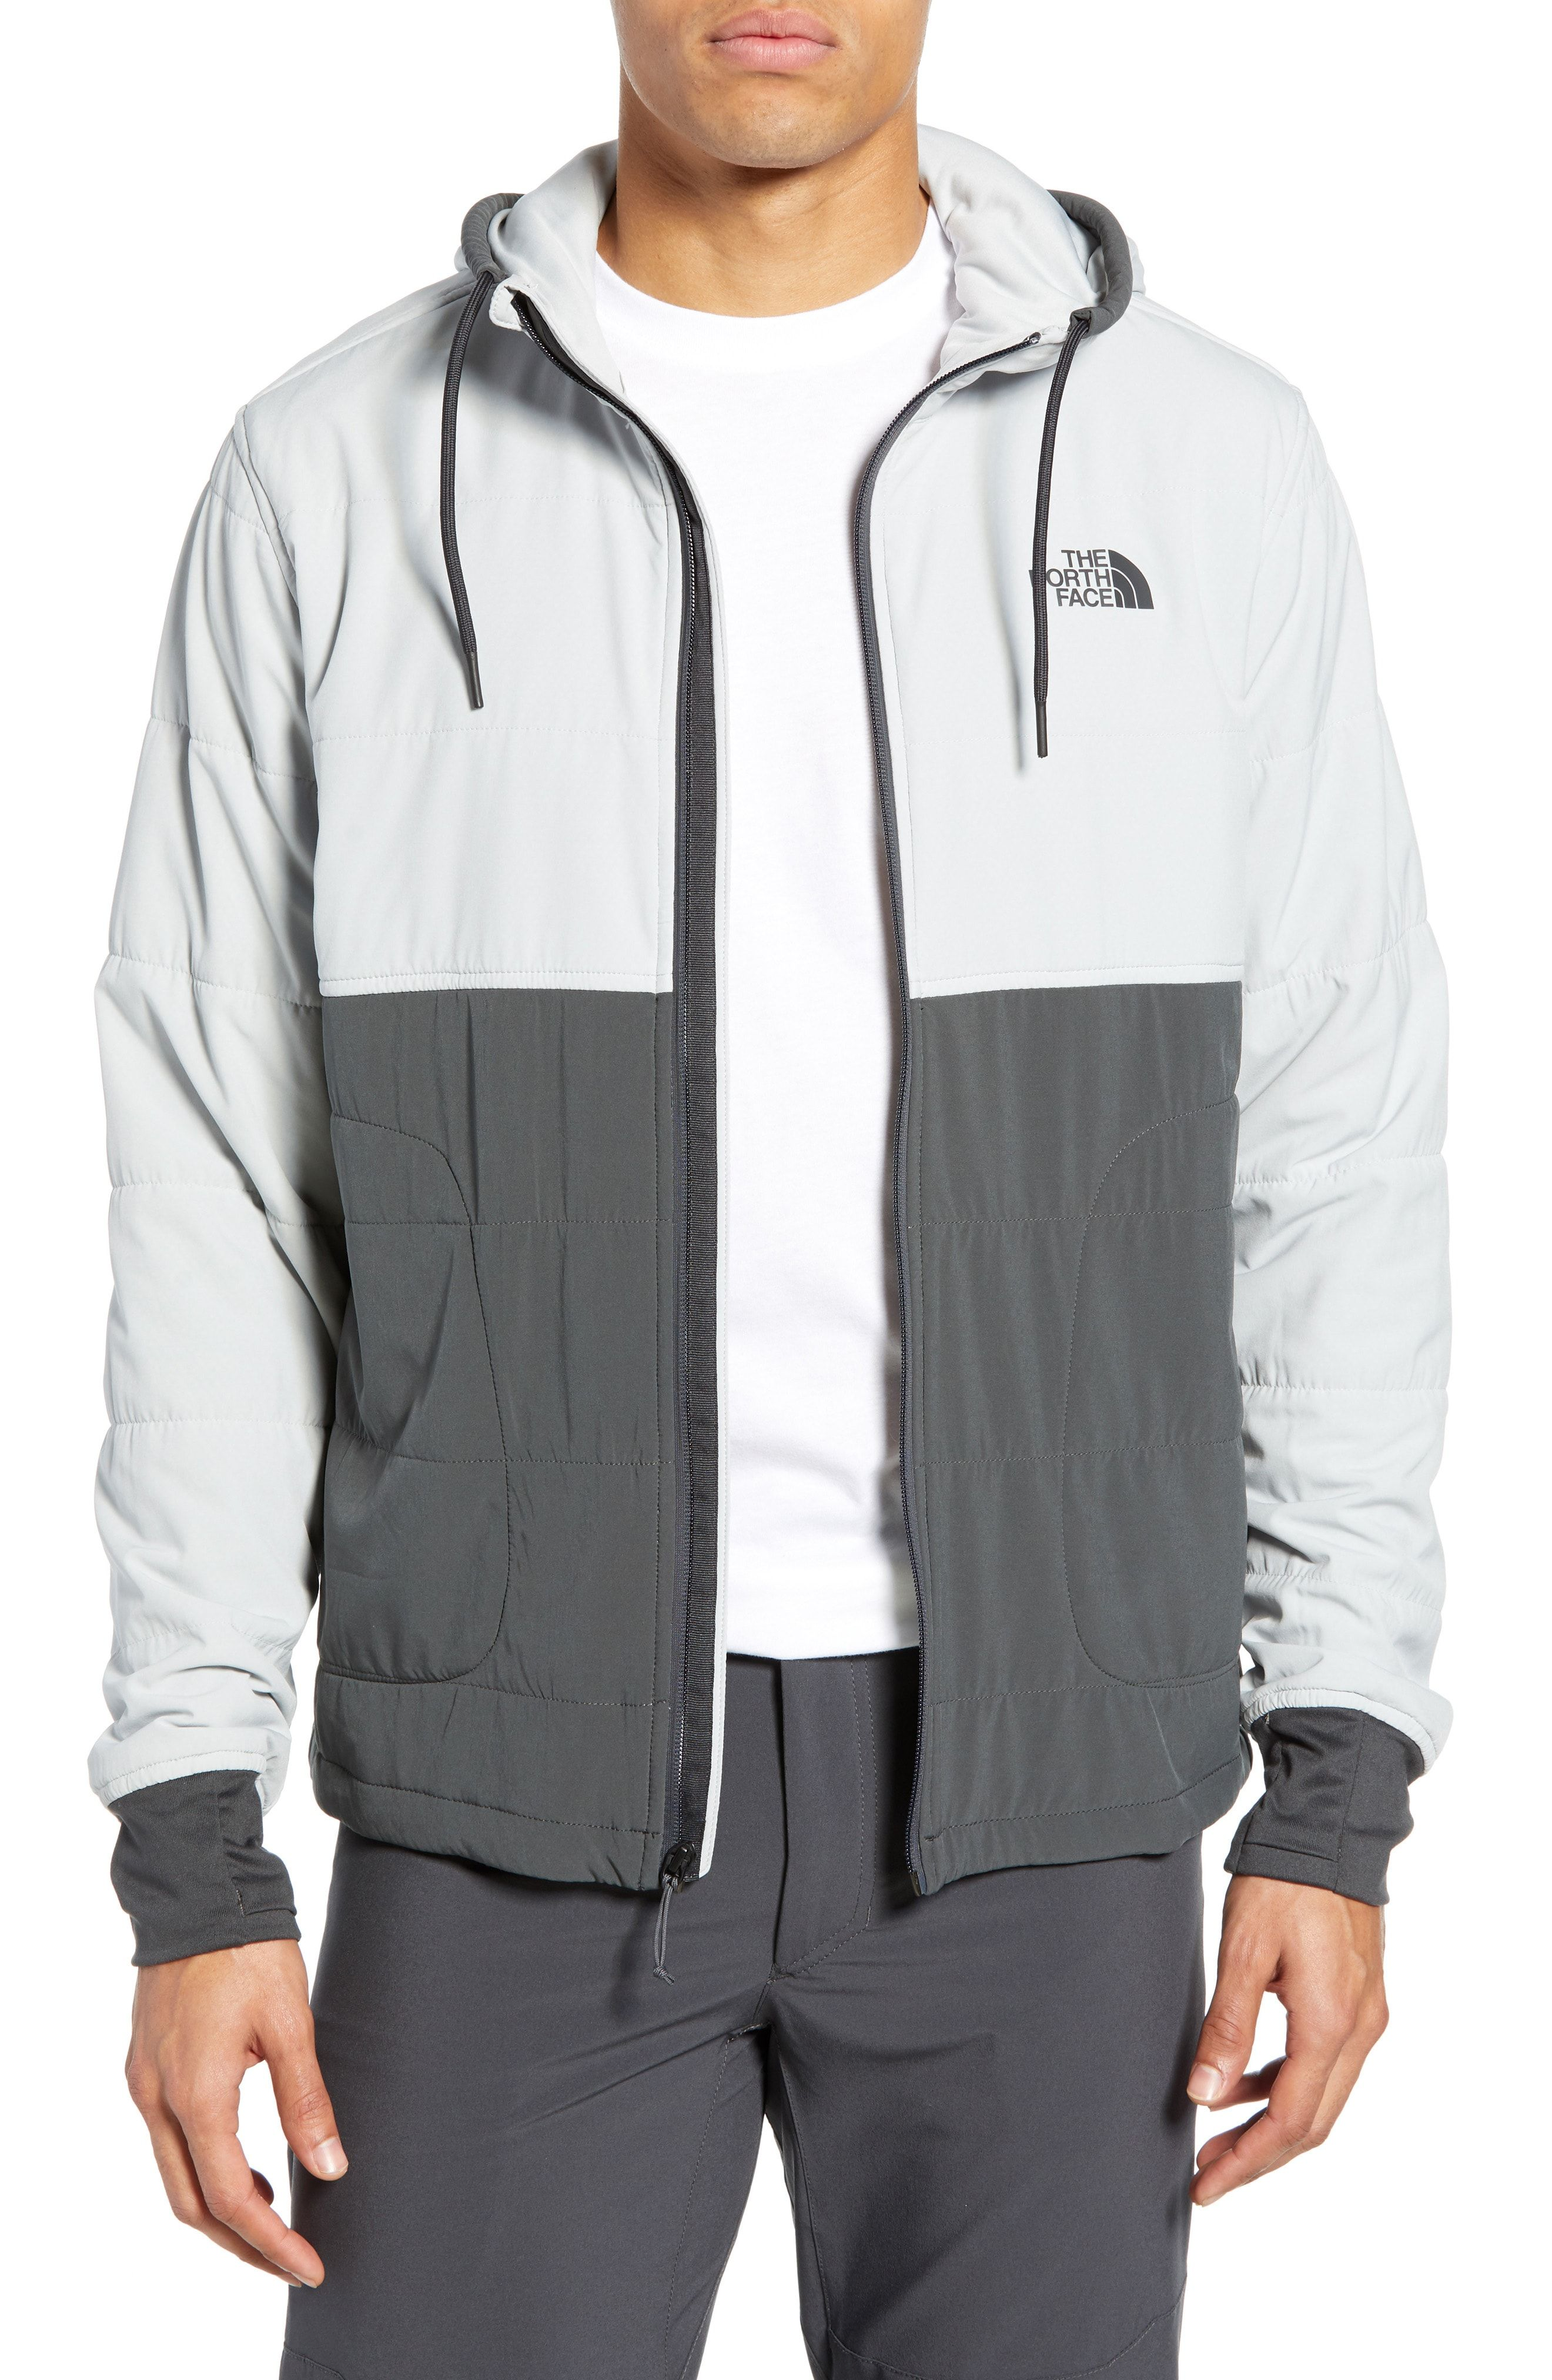 9d3407f73 THE NORTH FACE MOUNTAIN 2.0 QUILTED ZIP HOODIE. #thenorthface #cloth ...